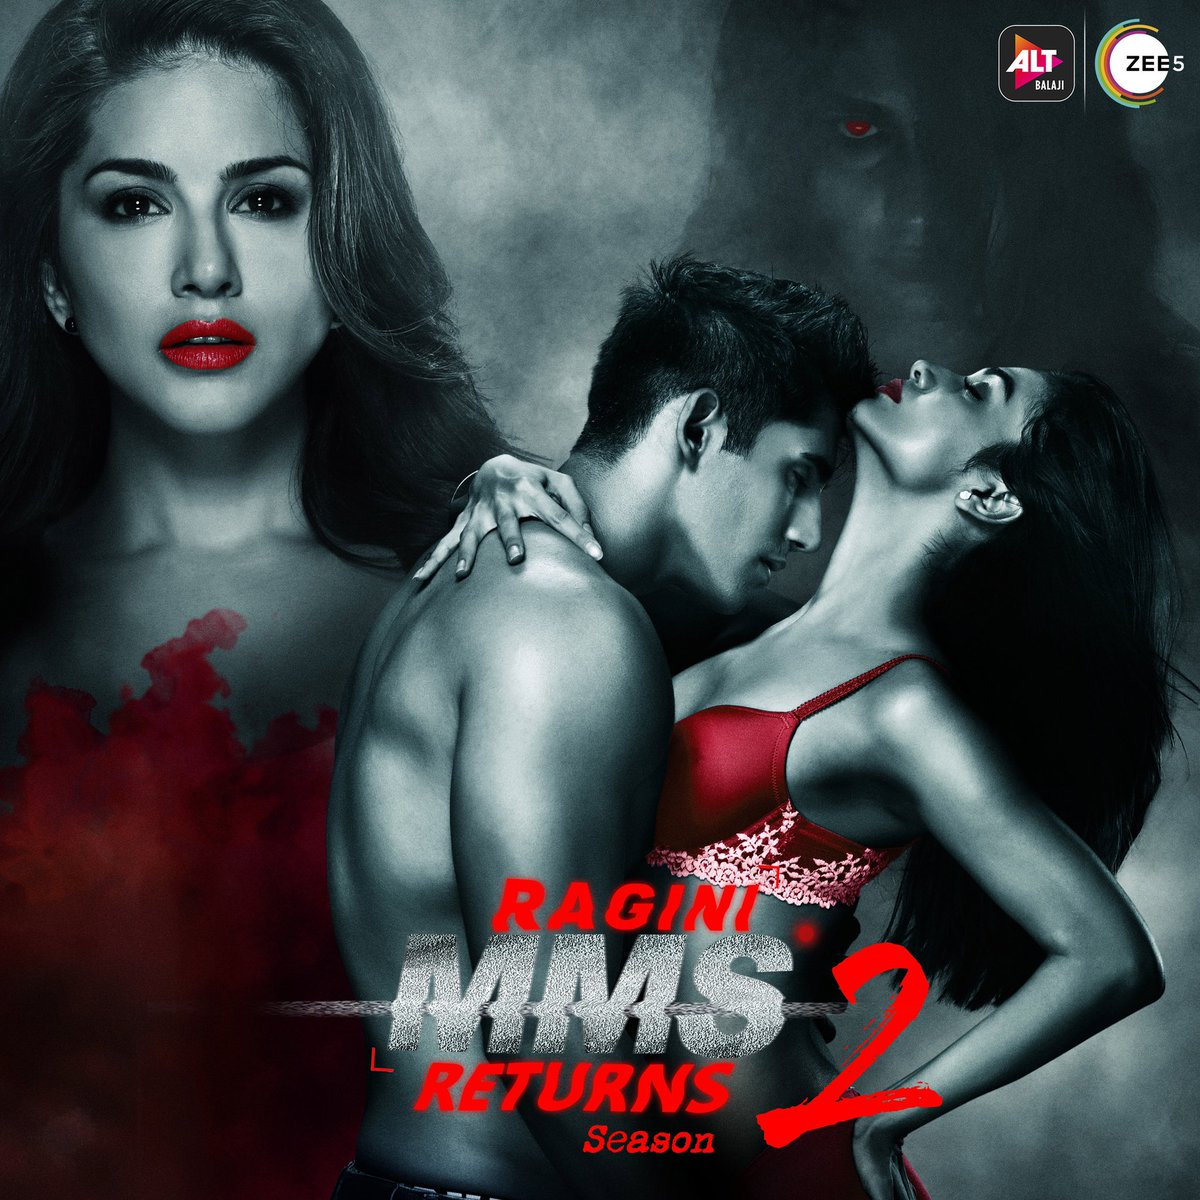 #RaginiMMSReturns Season 2 mein milega double the mazaa and double the sazaa!   Aur main aa rahi hai to add all the #chamak, #dhamak and #namak. Are you ready to experience the horr-gasms! 😉🤫  Get ready to scream on 18th December! @Divyakitweet @VSood12 @altbalaji @ZEE5Premium